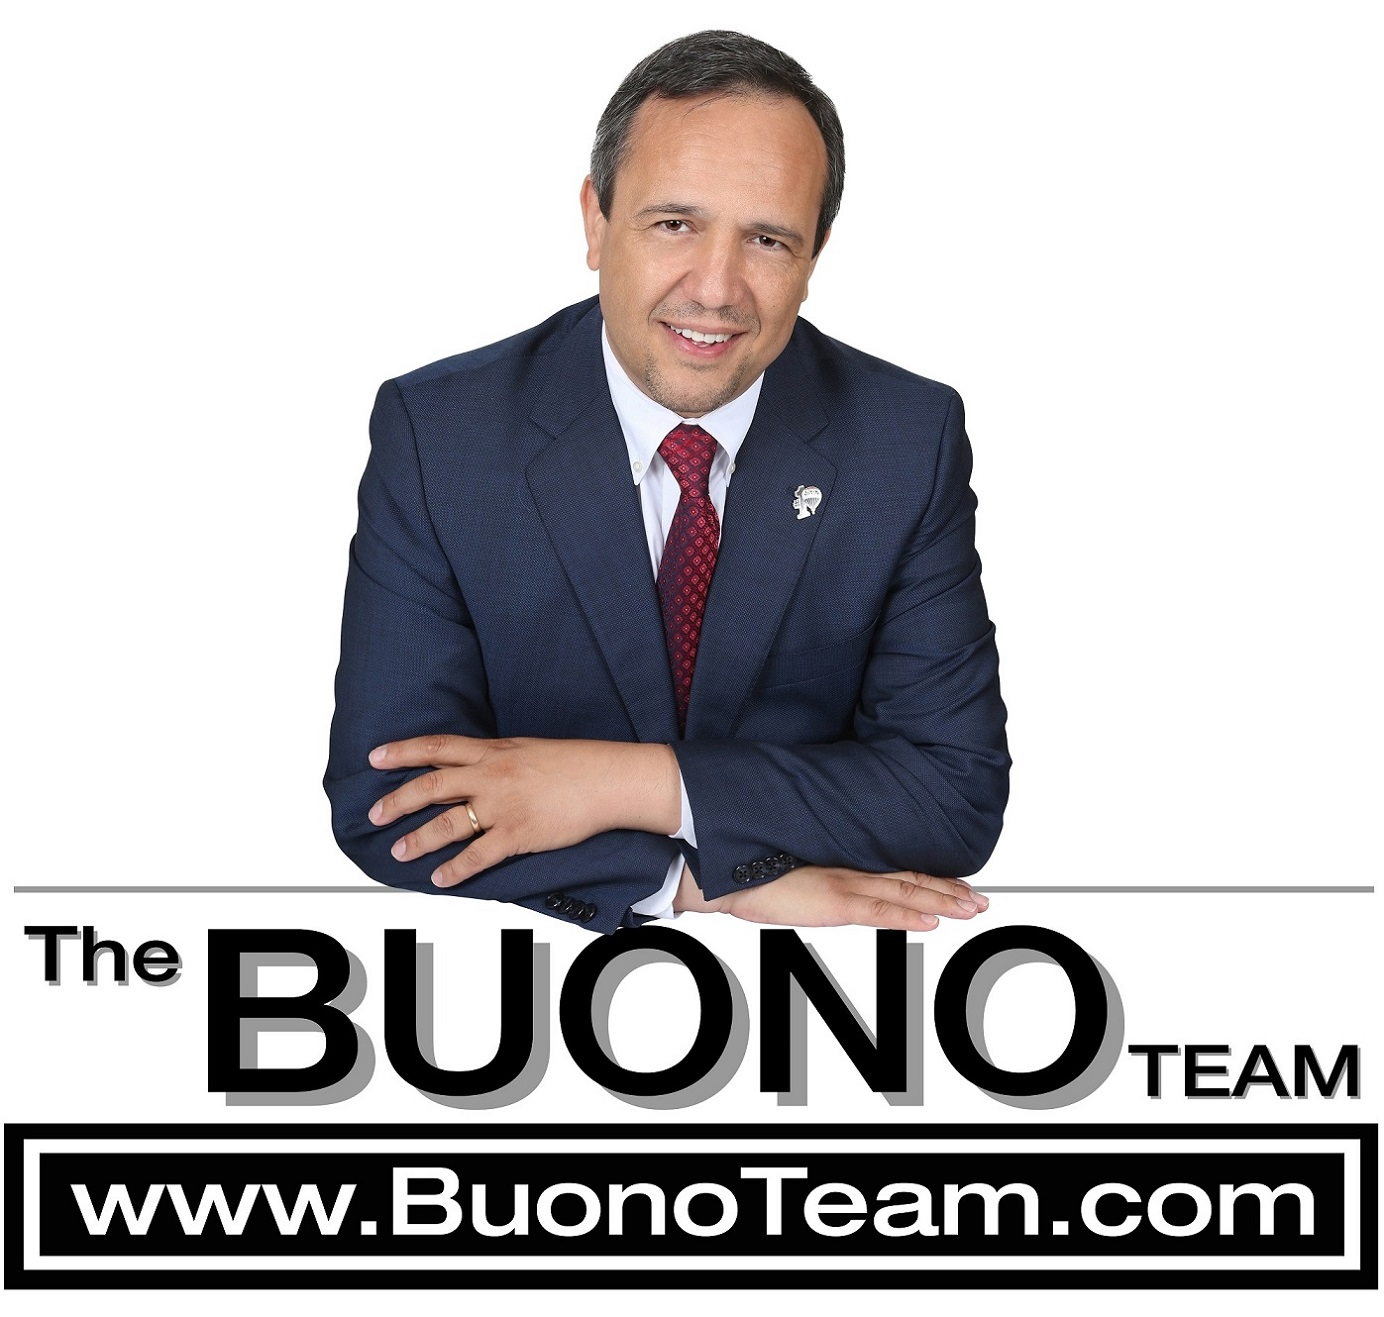 Joseph G Buono & The Buono Team